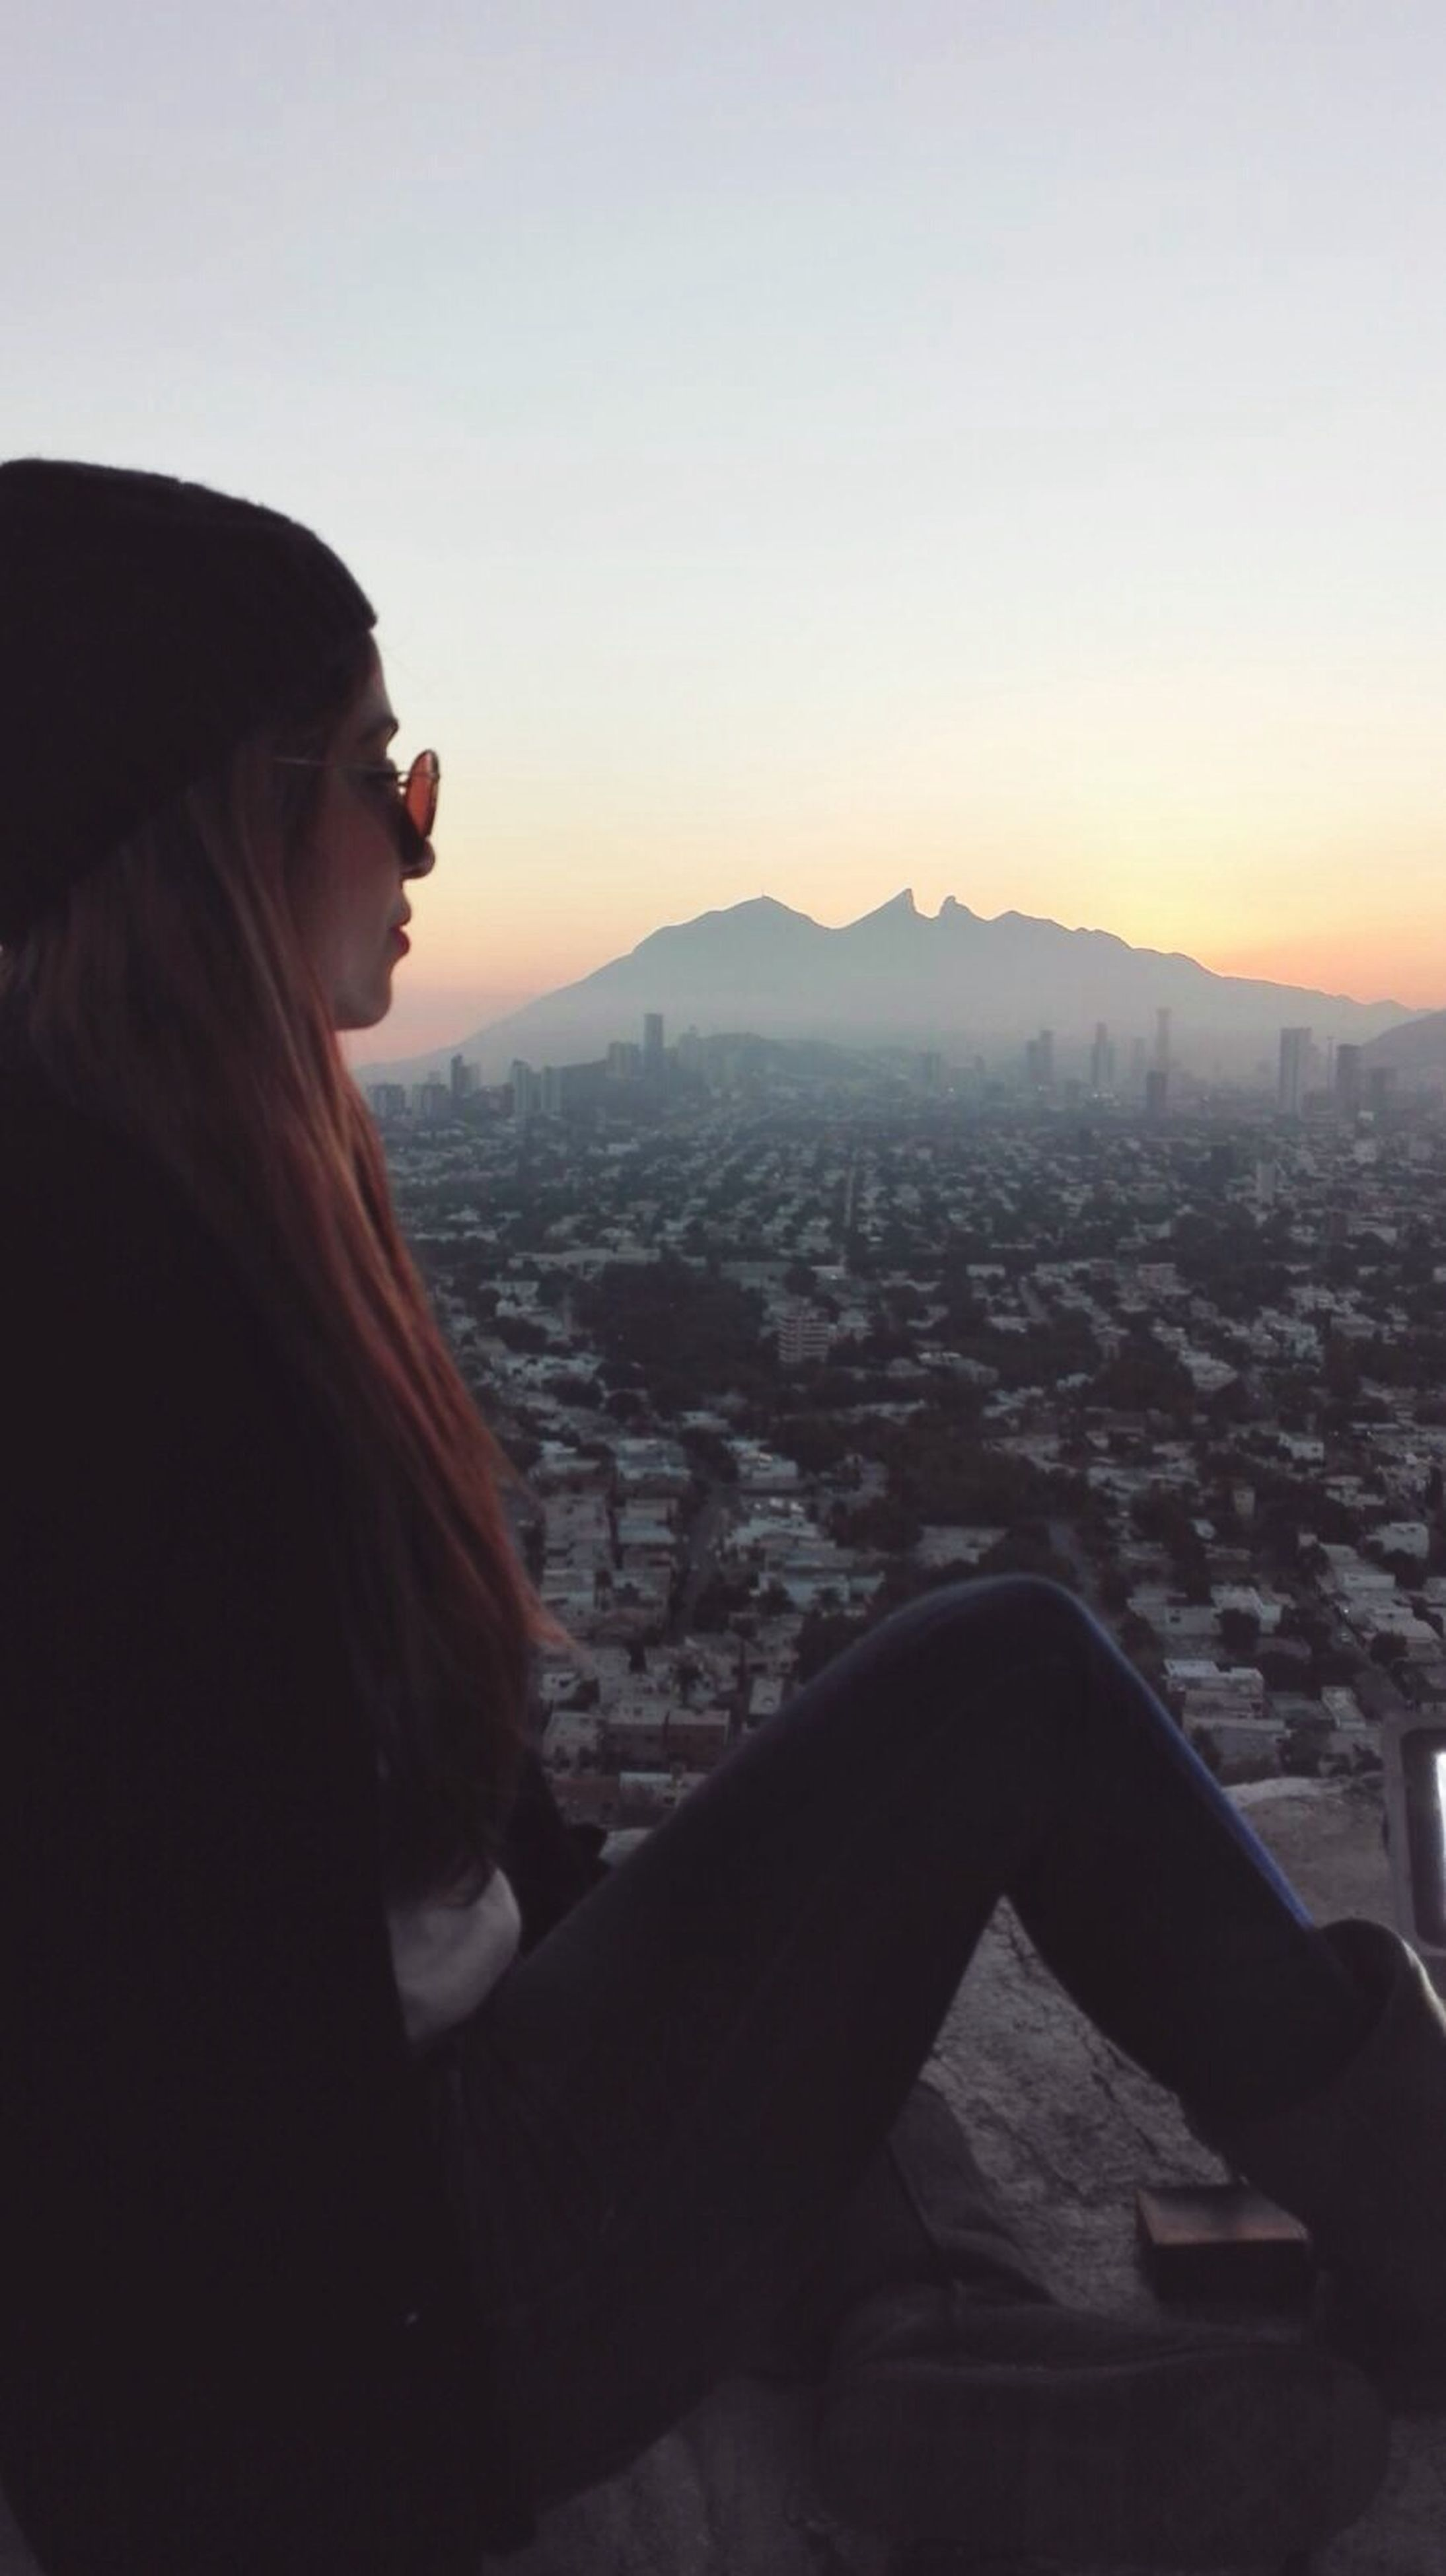 lifestyles, cityscape, leisure activity, mountain, sunset, building exterior, clear sky, architecture, city, built structure, young adult, copy space, looking at view, sky, casual clothing, waist up, landscape, sitting